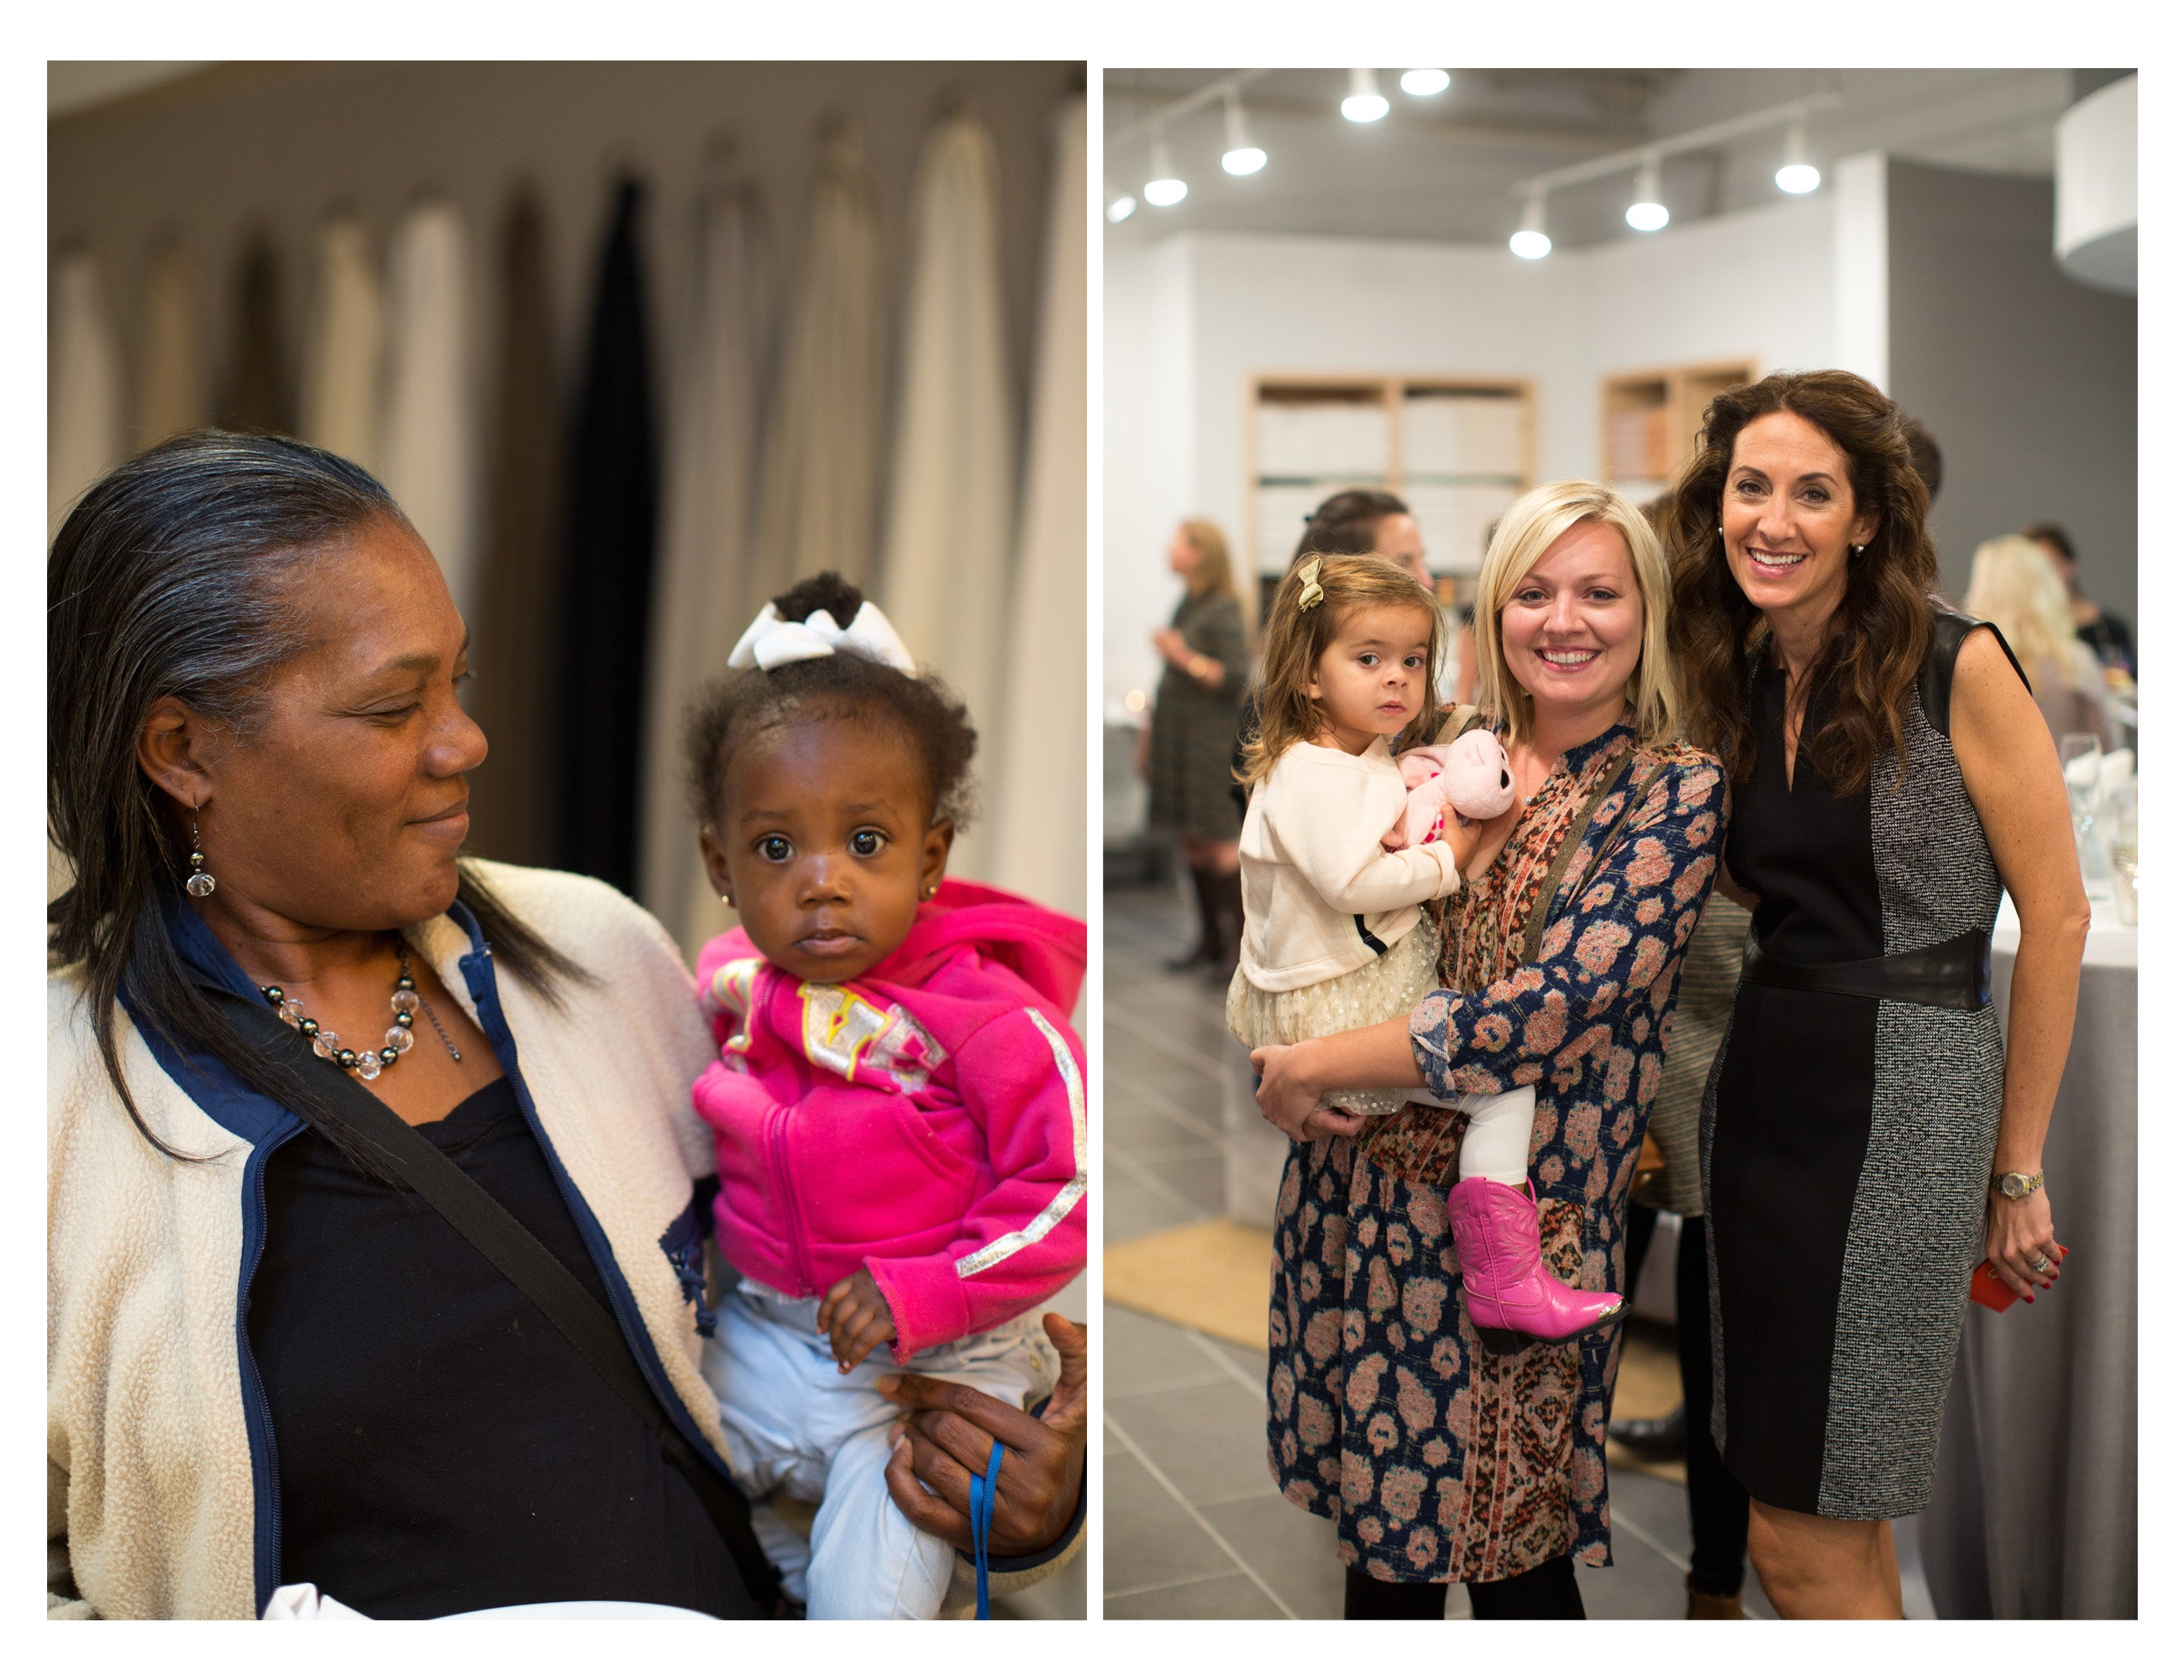 Some of the youngest guests to visit the grand opening, with their families